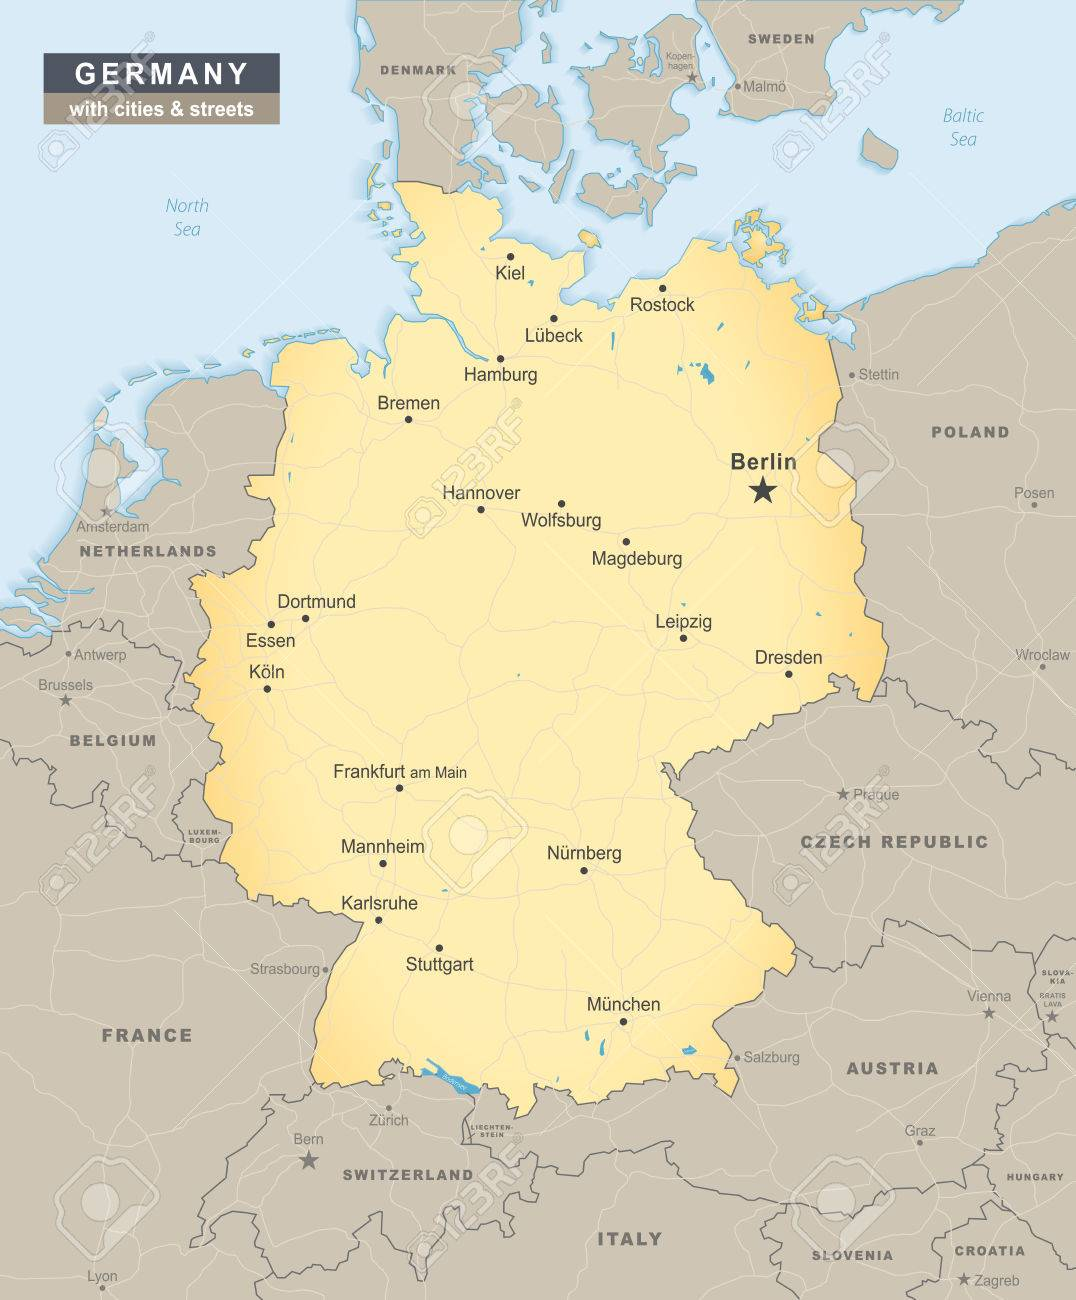 germany map overview with streets and cities including neighbour states illustration stock illustration 72356052